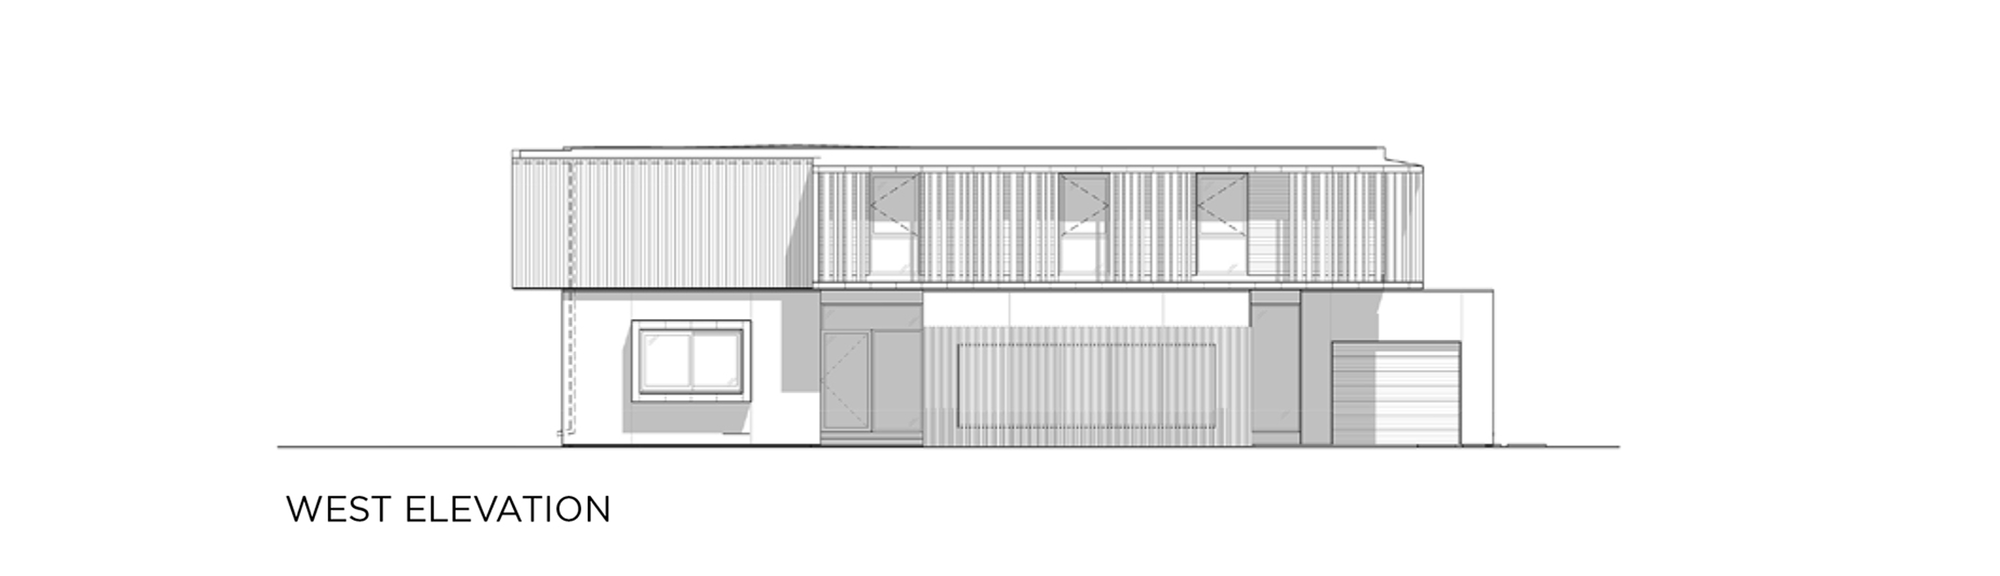 baulinder-haus-hufft-projects_west_elevation